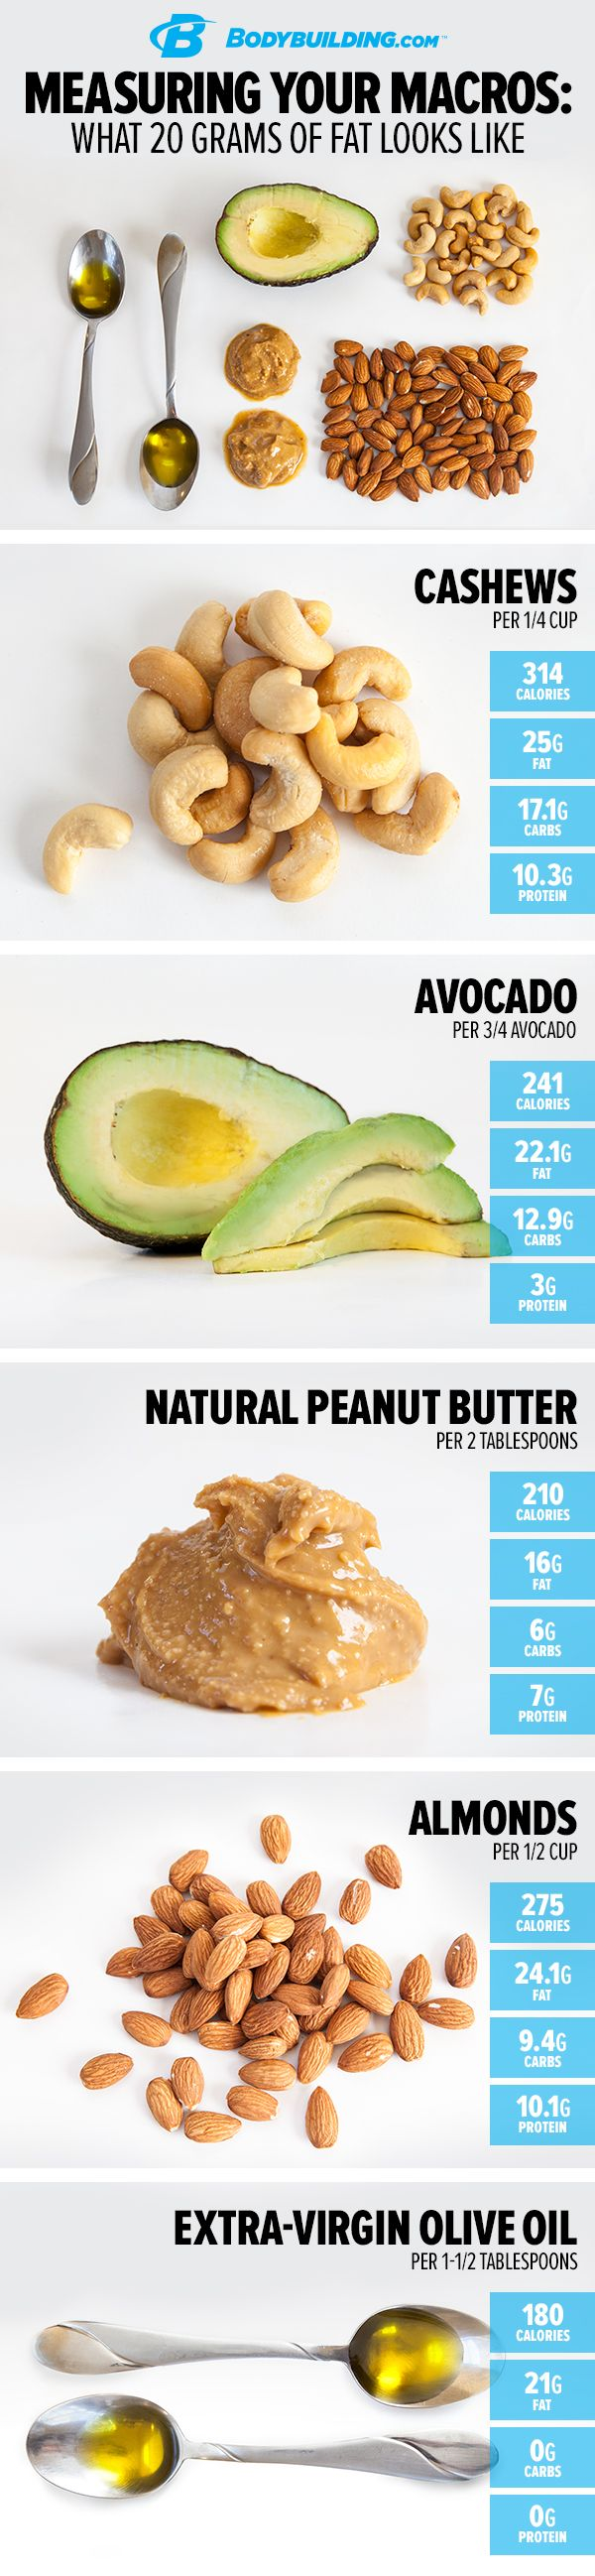 measuring your macros: what 30 grams of protein looks like. want to